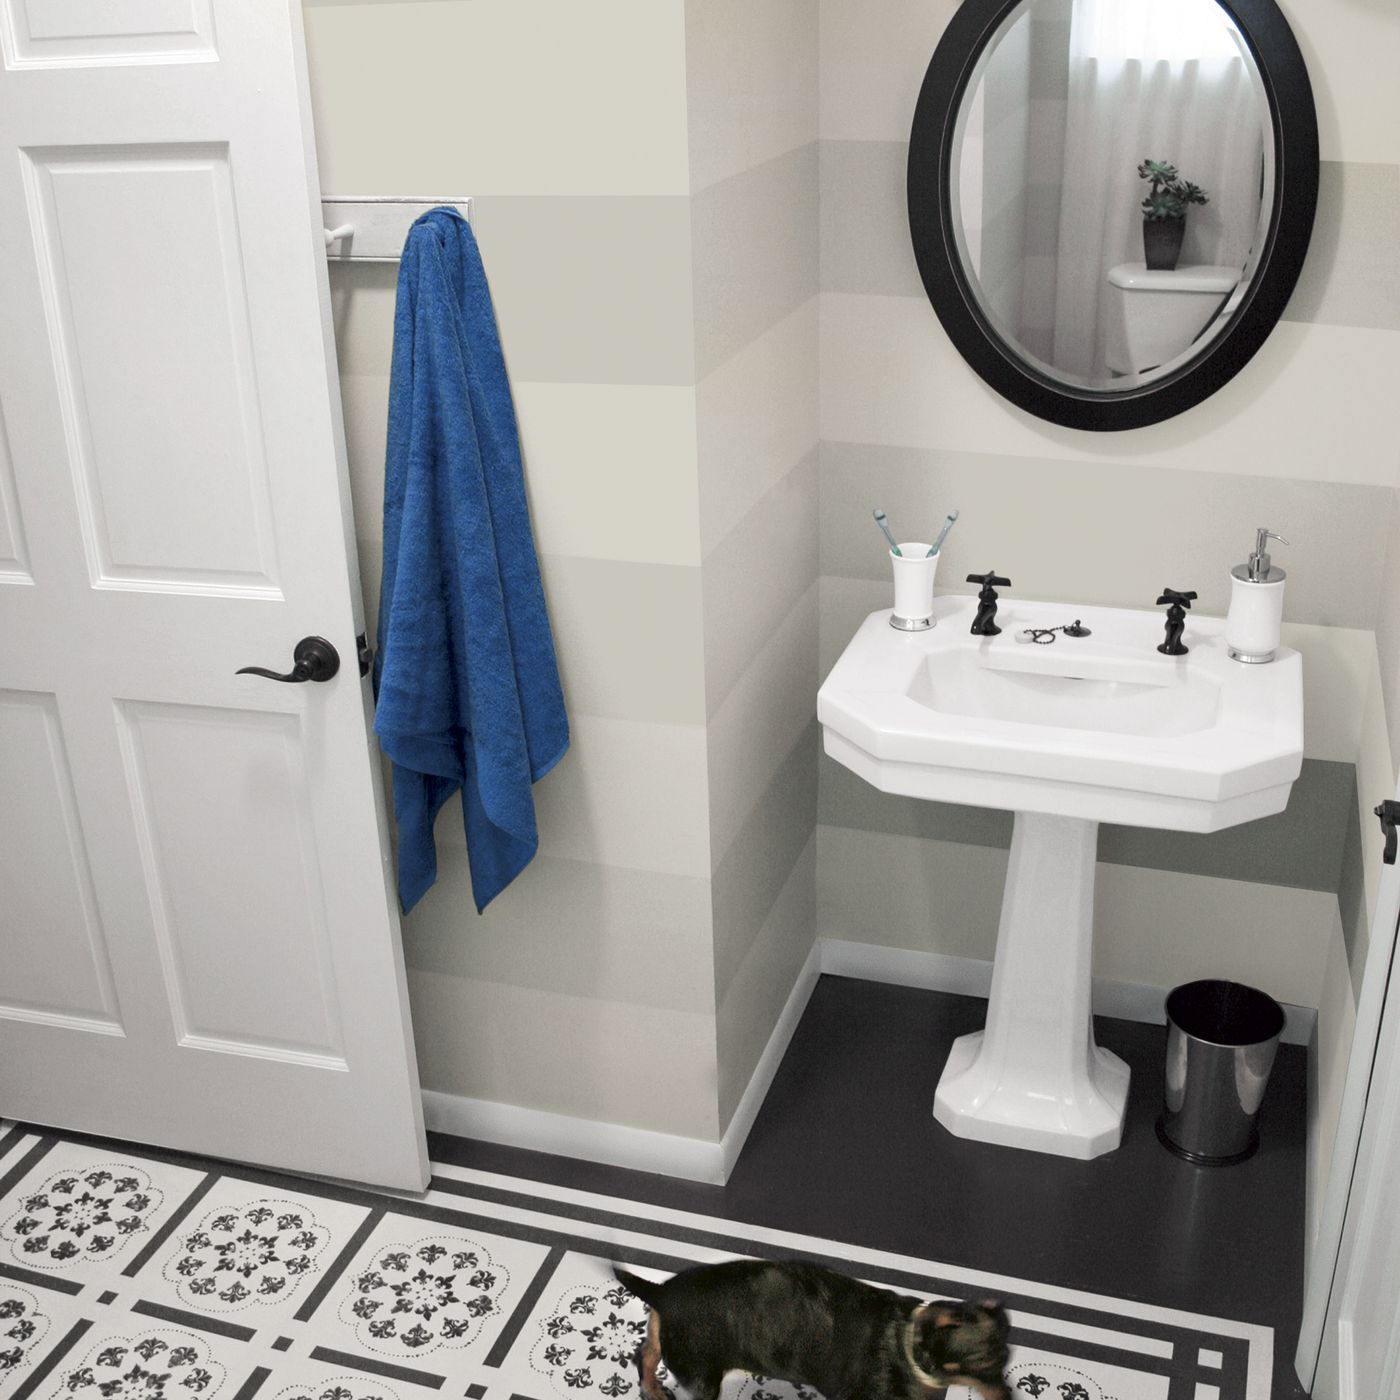 Bathroom Remodel Before And After Photos This Old House